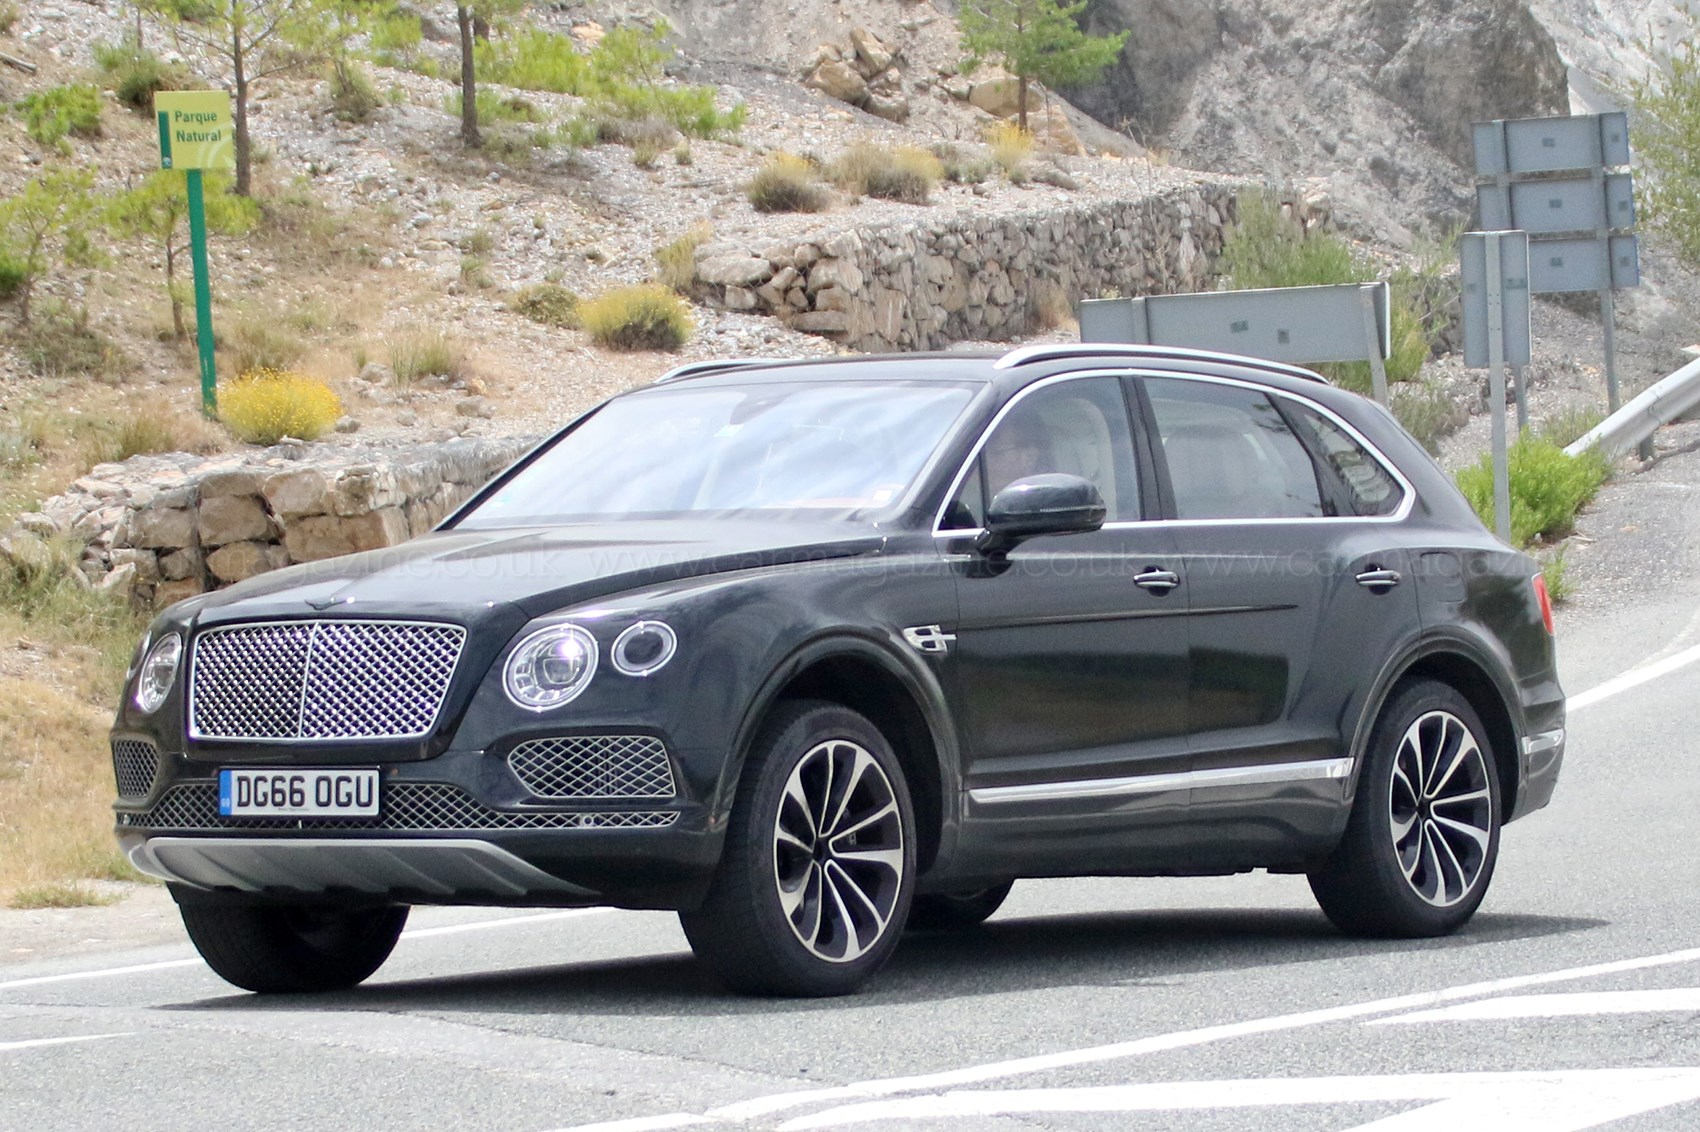 Bentley Bentayga plug-in hybrid spyshots by CAR Magazine